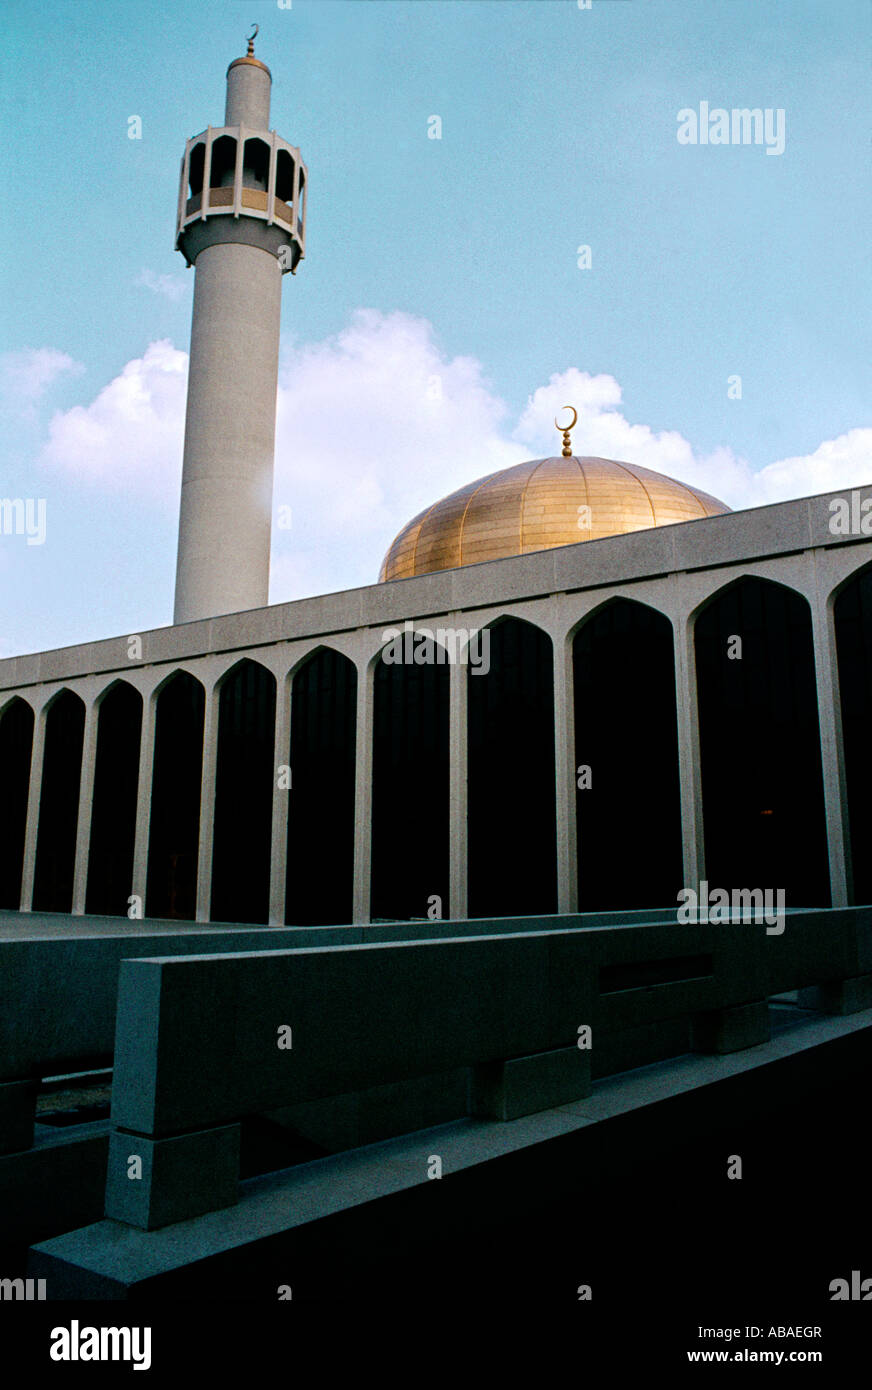 London England Regents Park Mosque The Central Mosque Dome and Minaret Stock Photo